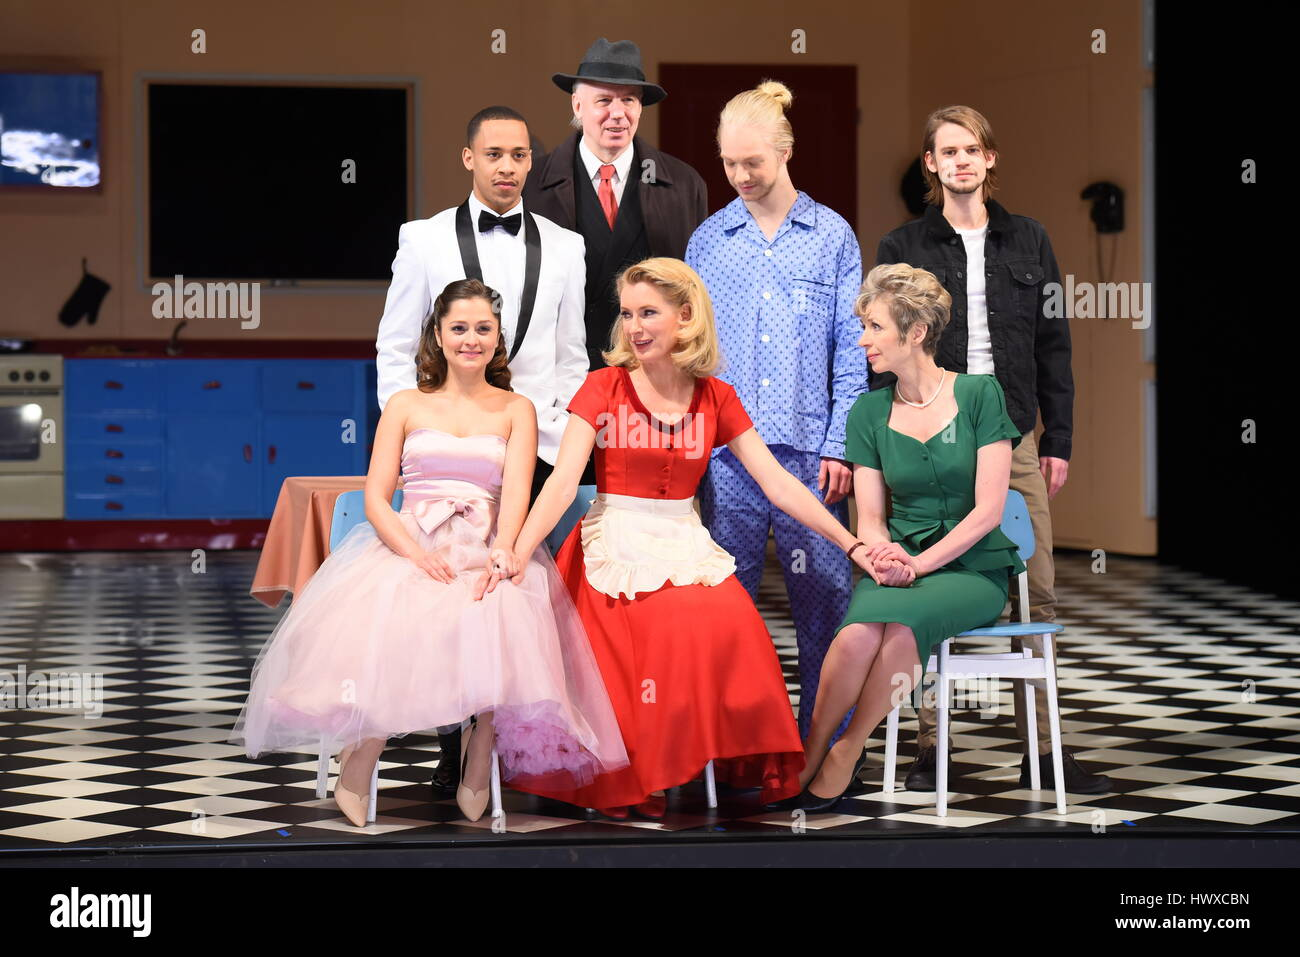 Press rehearsal of the play 'Alles muss glaenzen' at the Kurfürstendamm Theatre  Featuring: Sarah Alles, - Stock Image